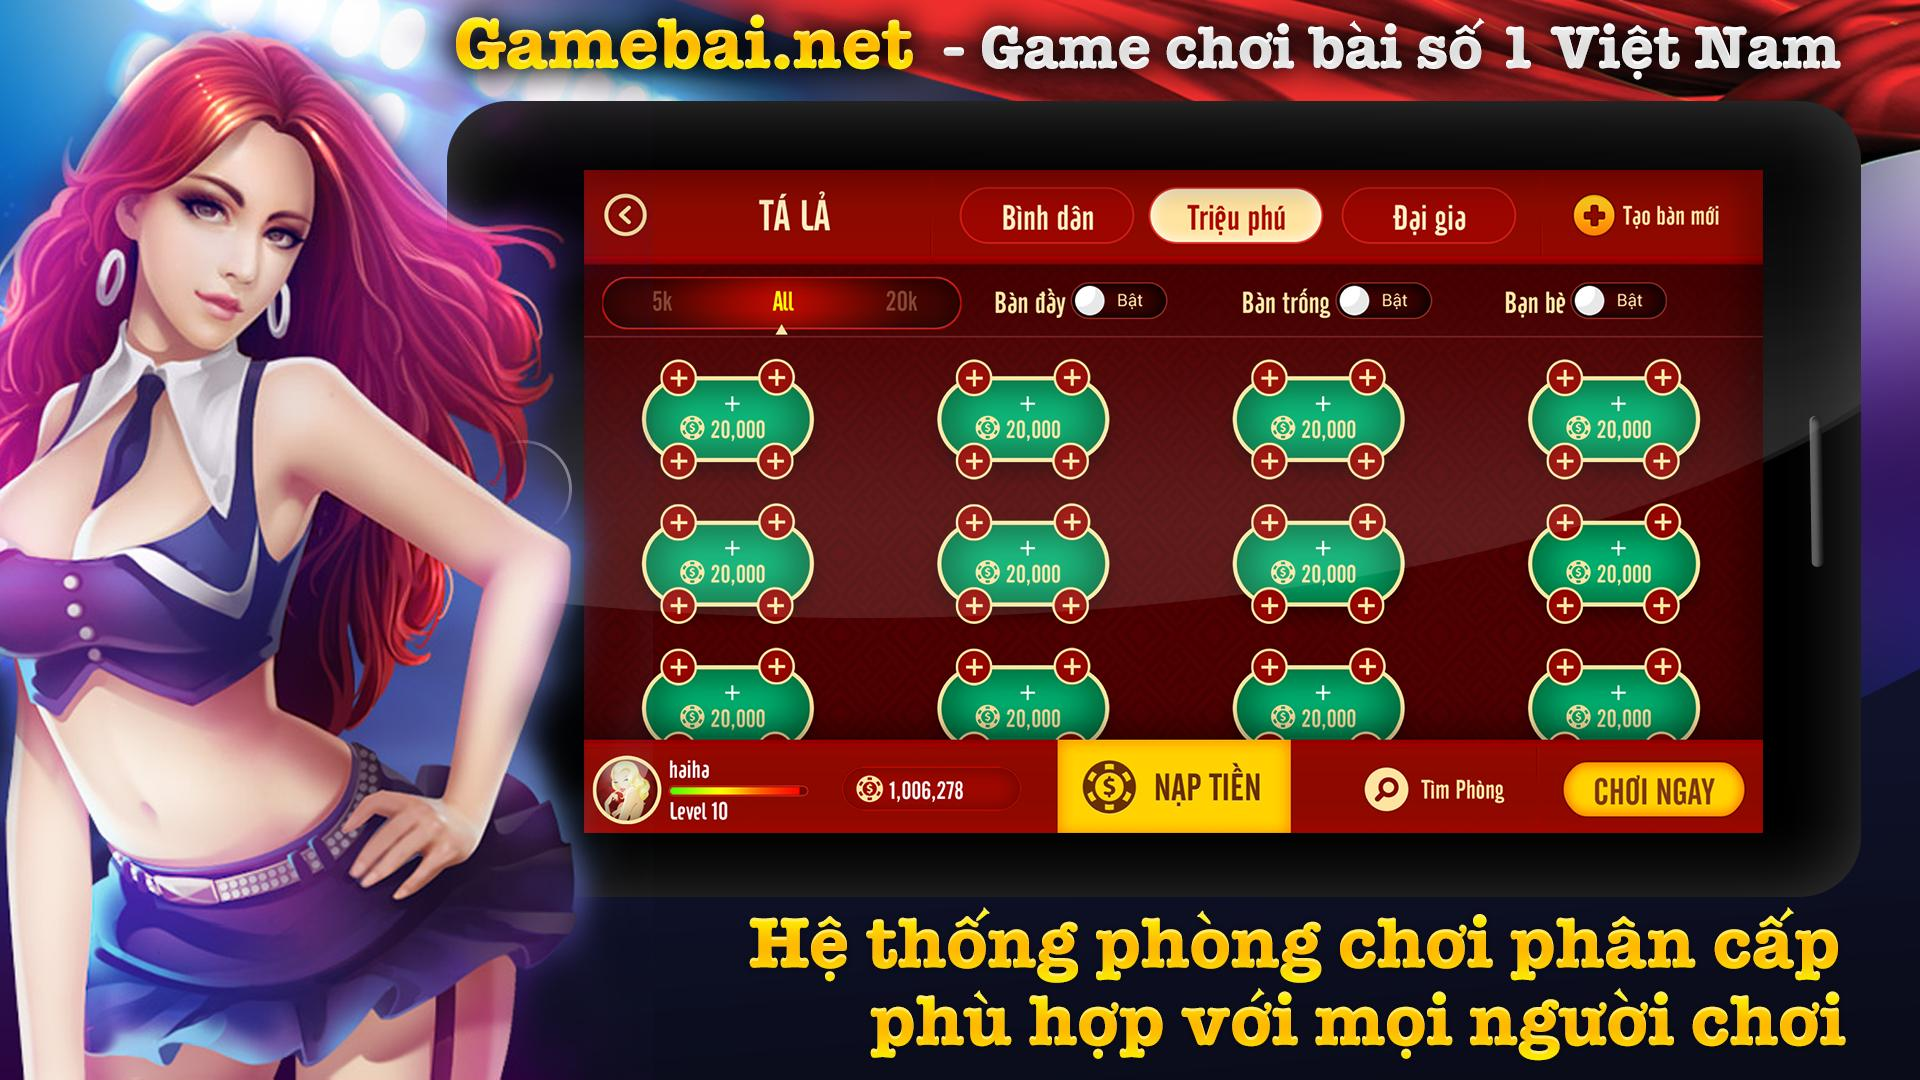 Gamebai.net